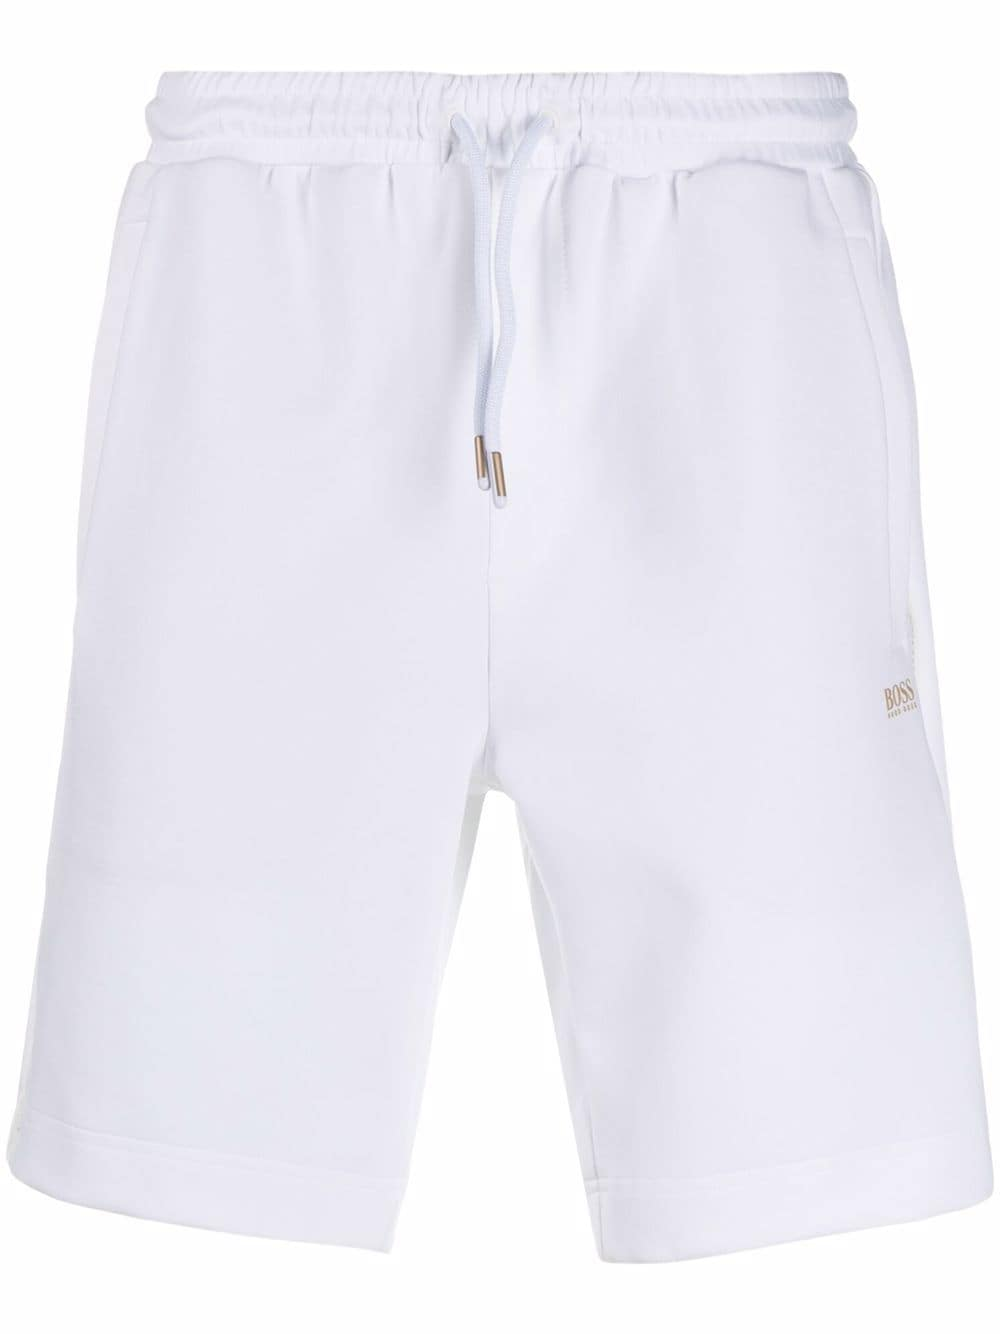 BOSS Gold Detailing Cotton Shorts White